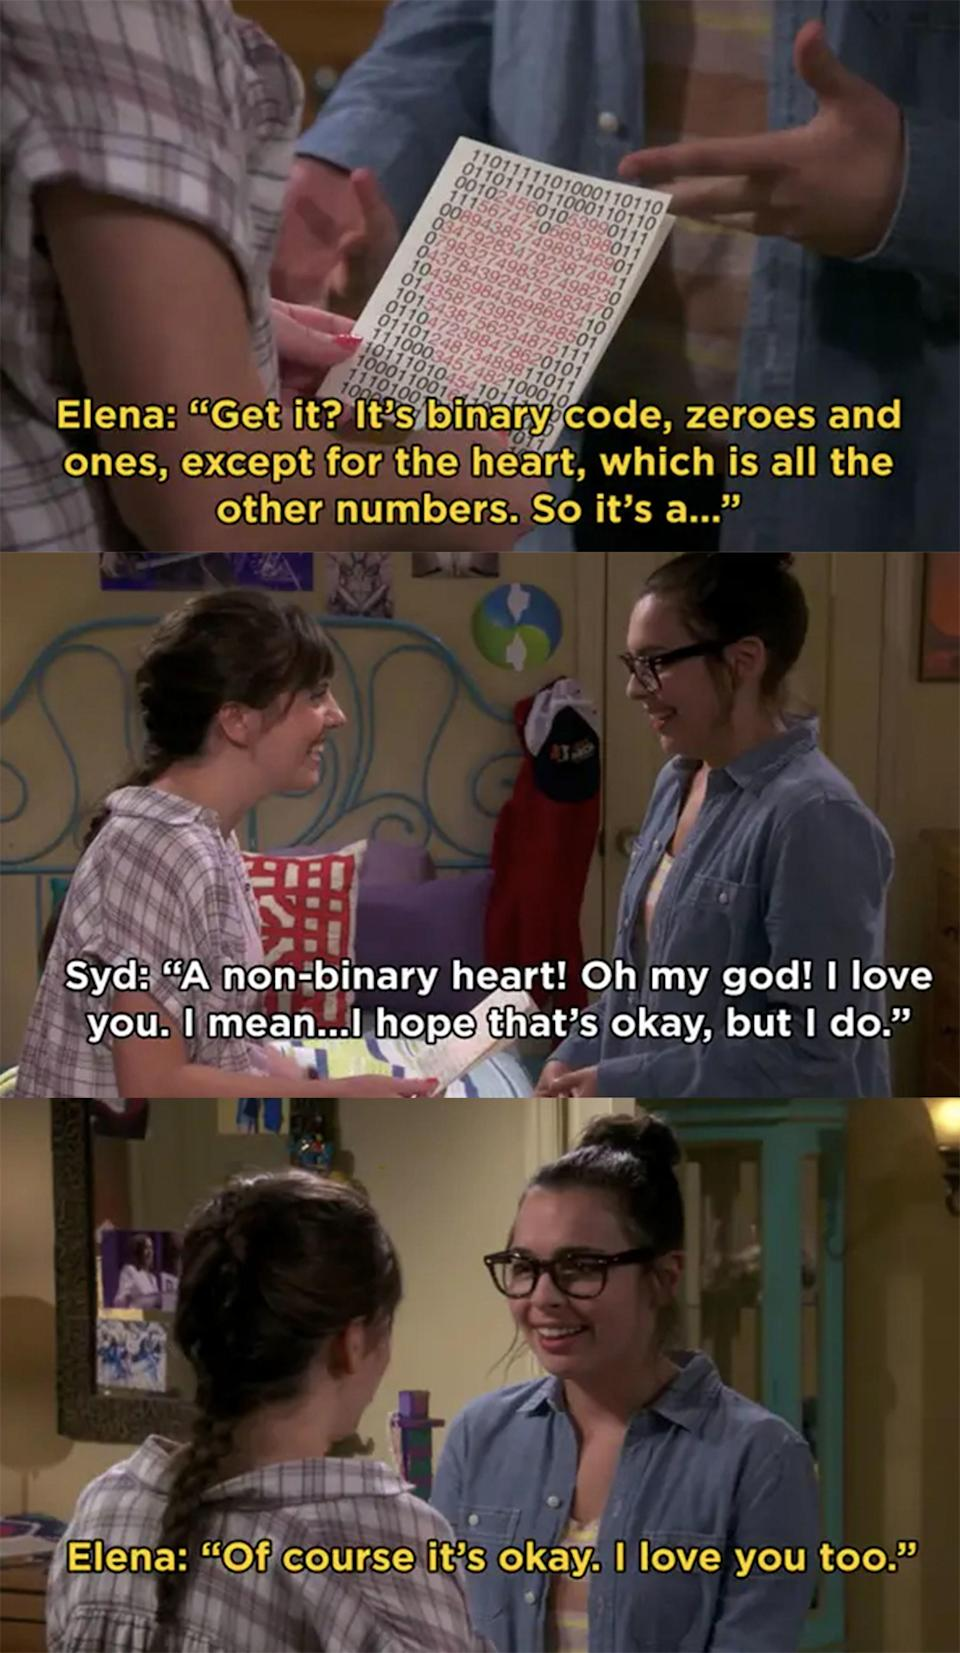 """Elena: """"It's binary code, zeroes and ones, except for the heart."""" Syd: """"A nonbinary heart! I love you, I mean, I hope that's okay, but I do."""" Elena: """"Of course it's okay. I love you too"""""""